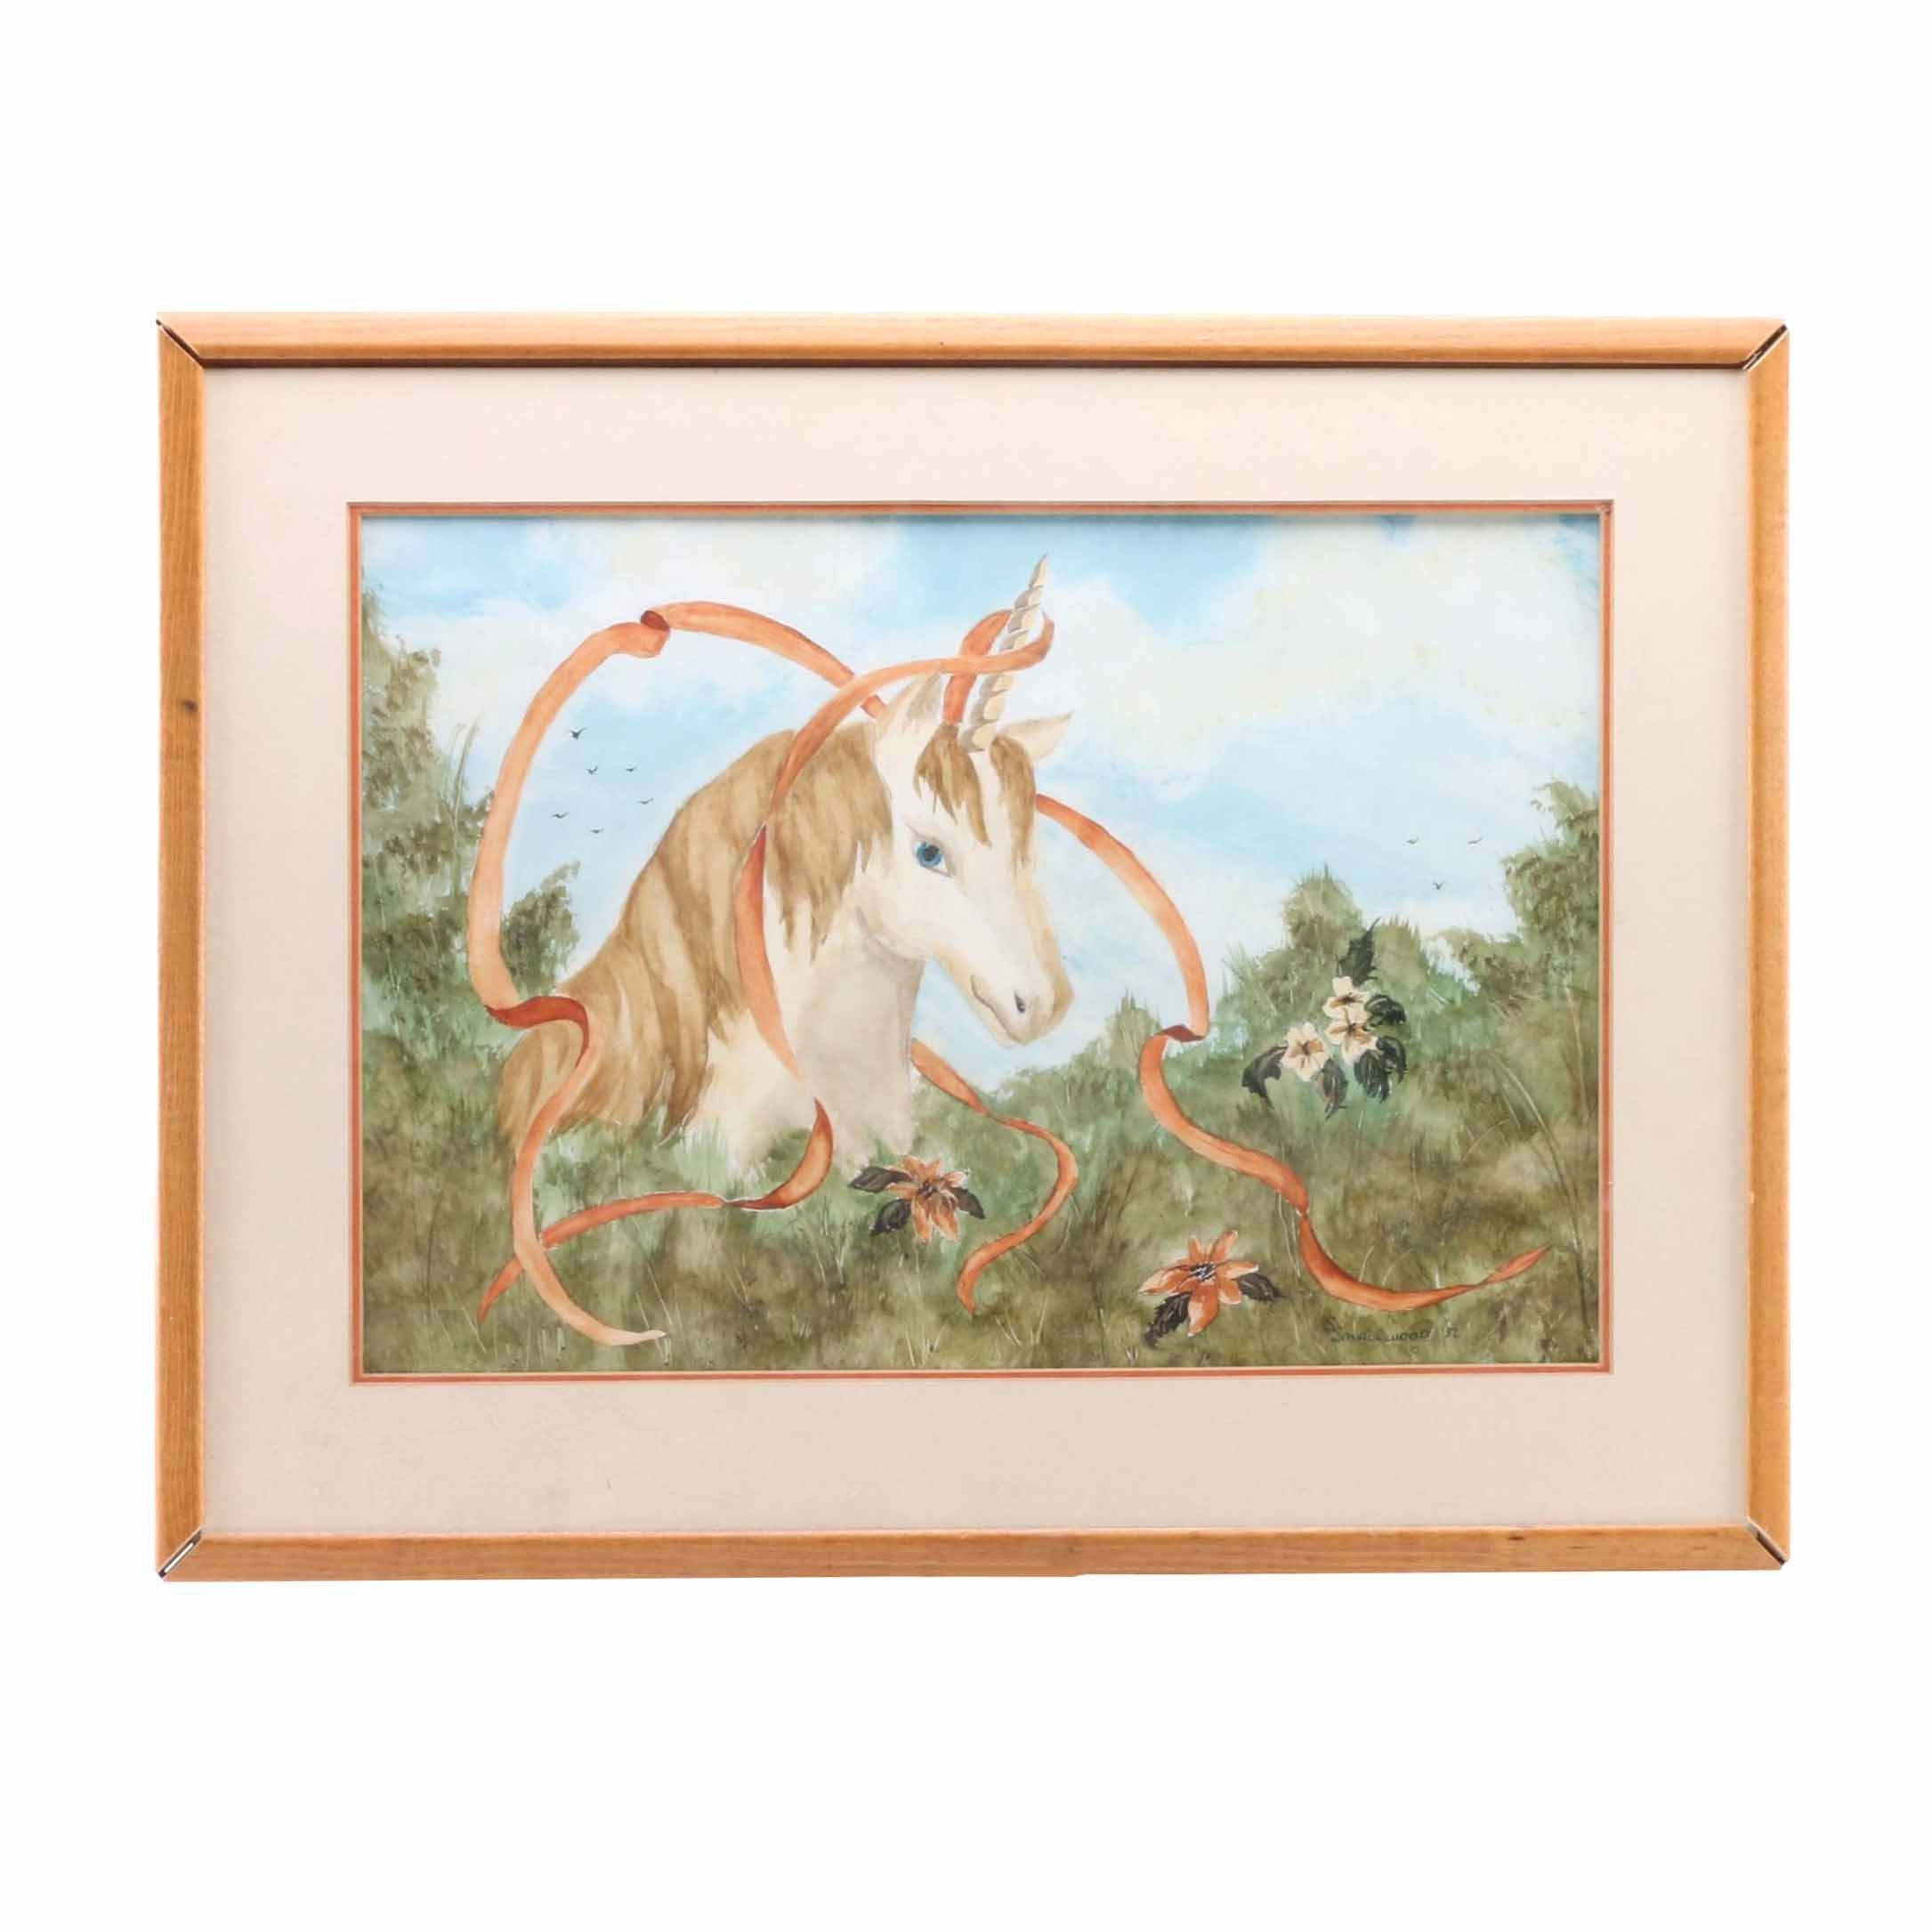 S. Smallwood Watercolor Painting on Paper of a Unicorn